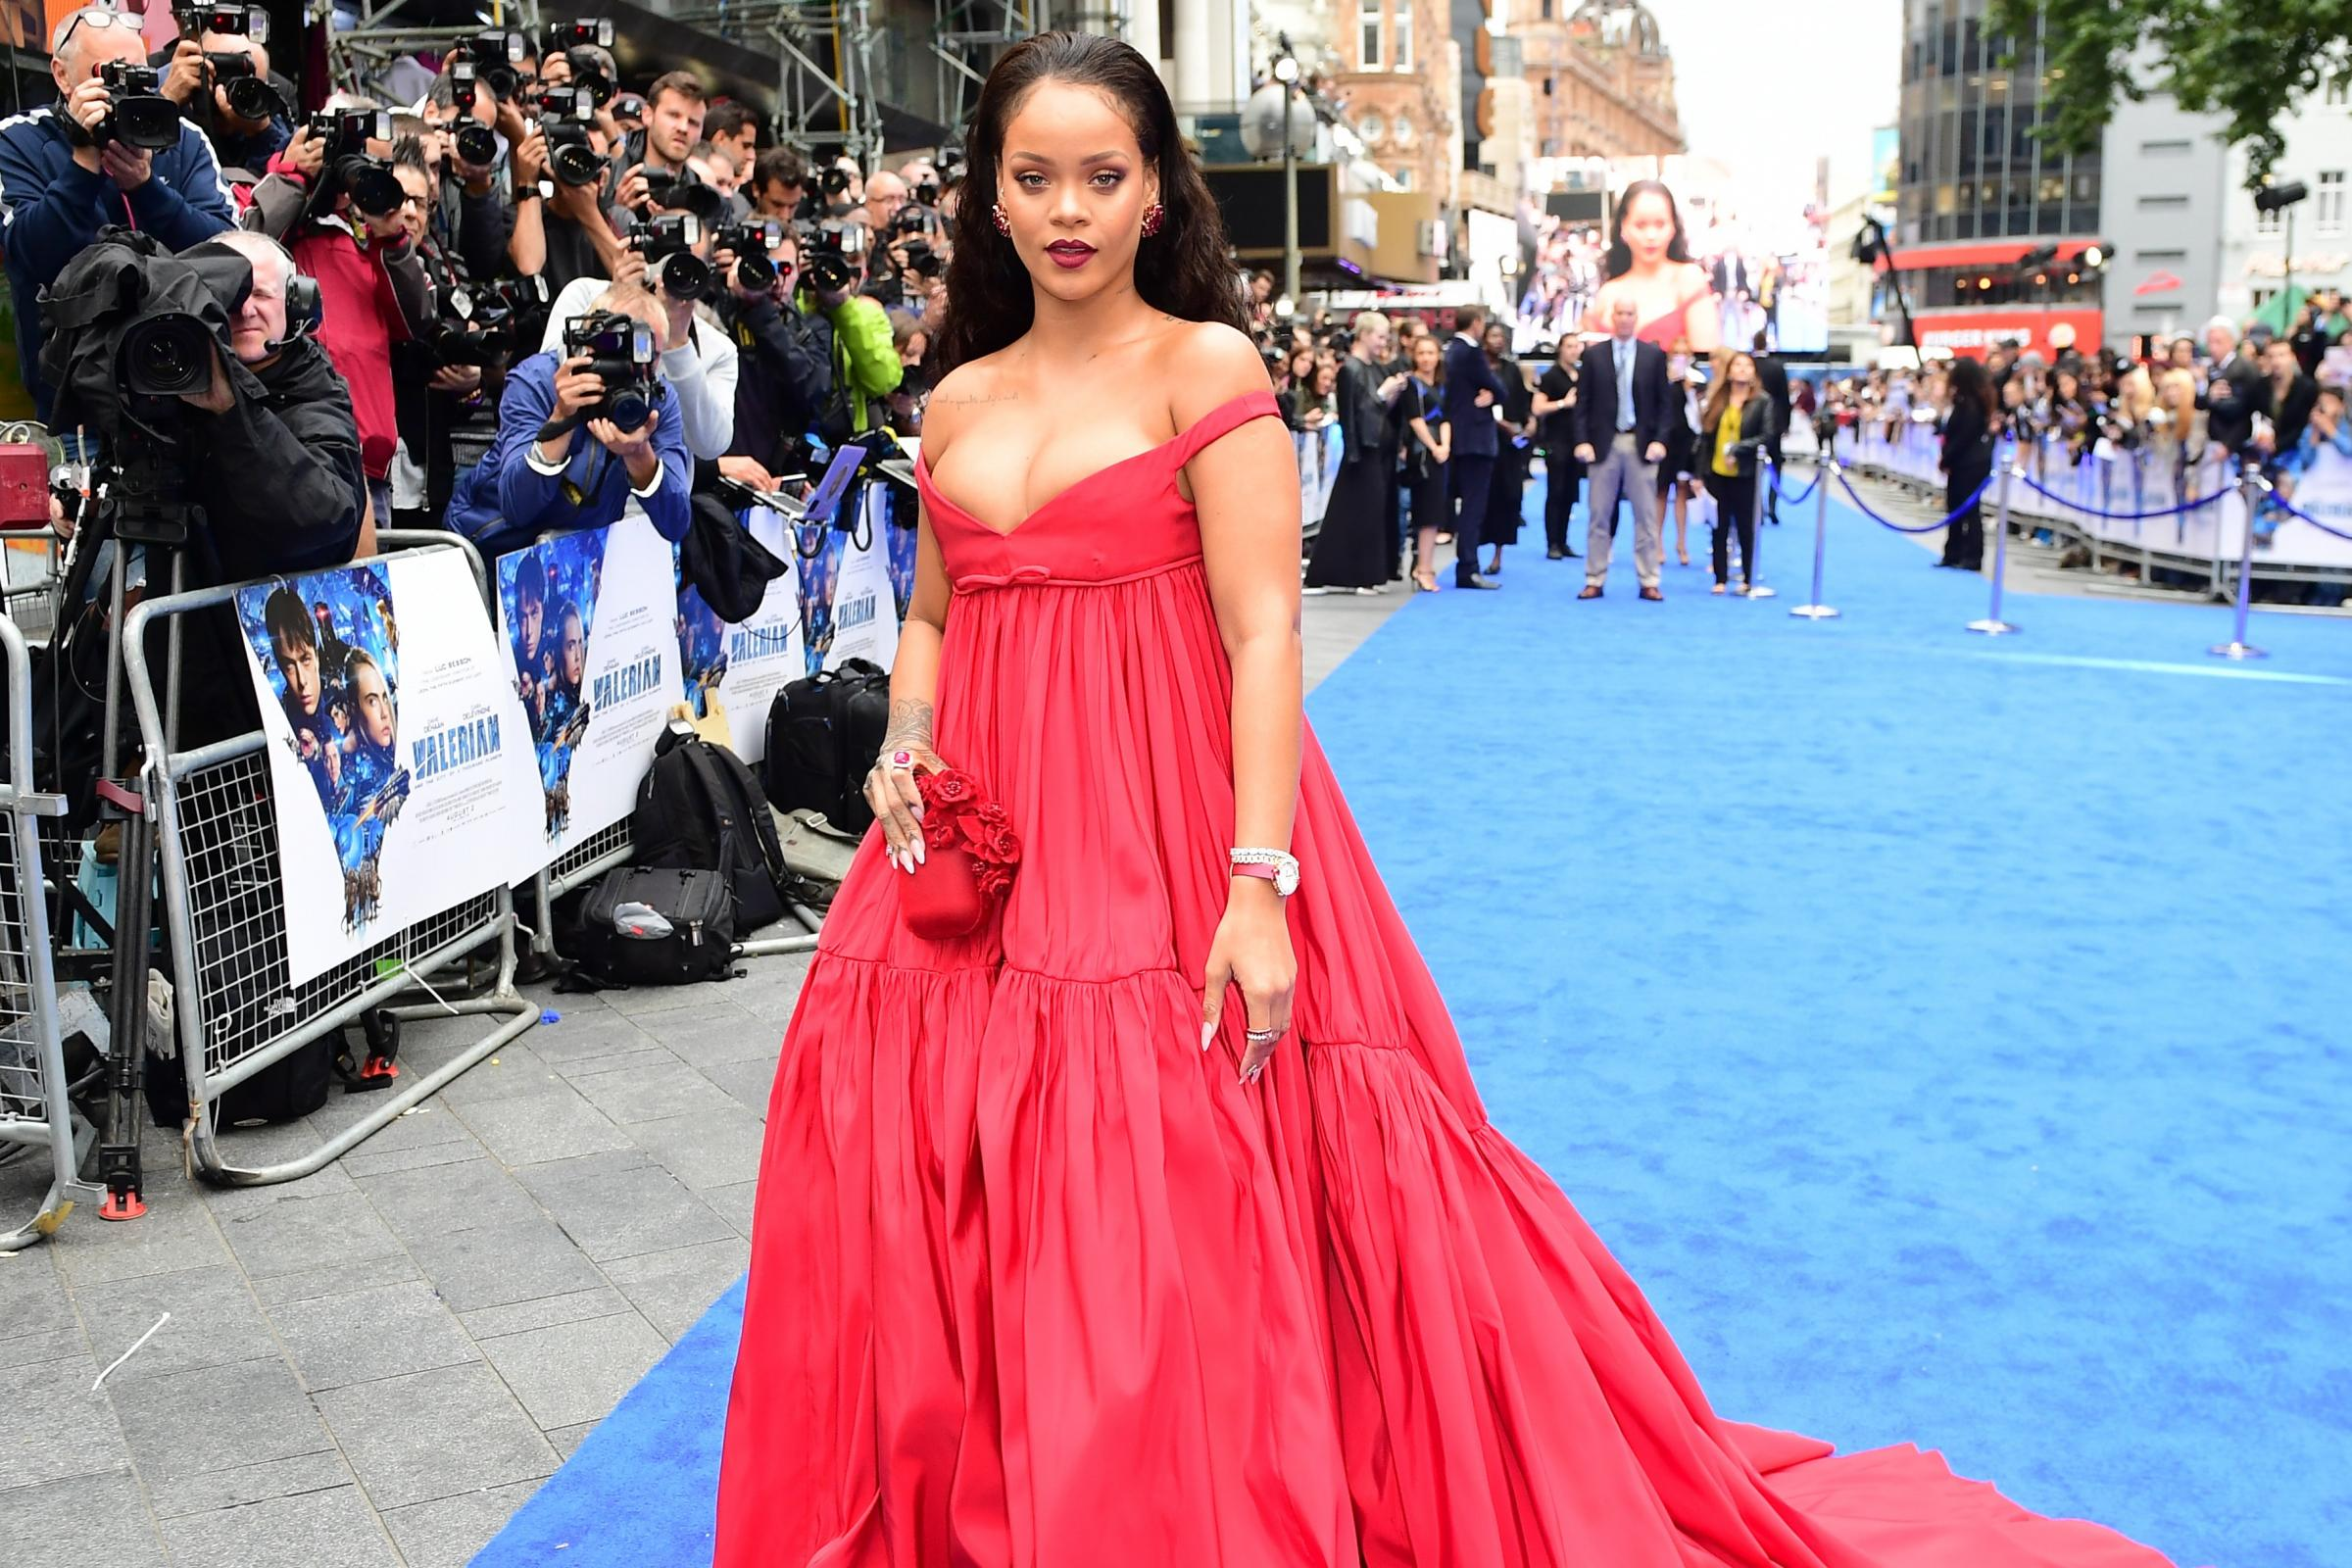 The dress exchange pocklington - Rihanna Promises Visually Thrilling Film At Valerian Premiere From York Press